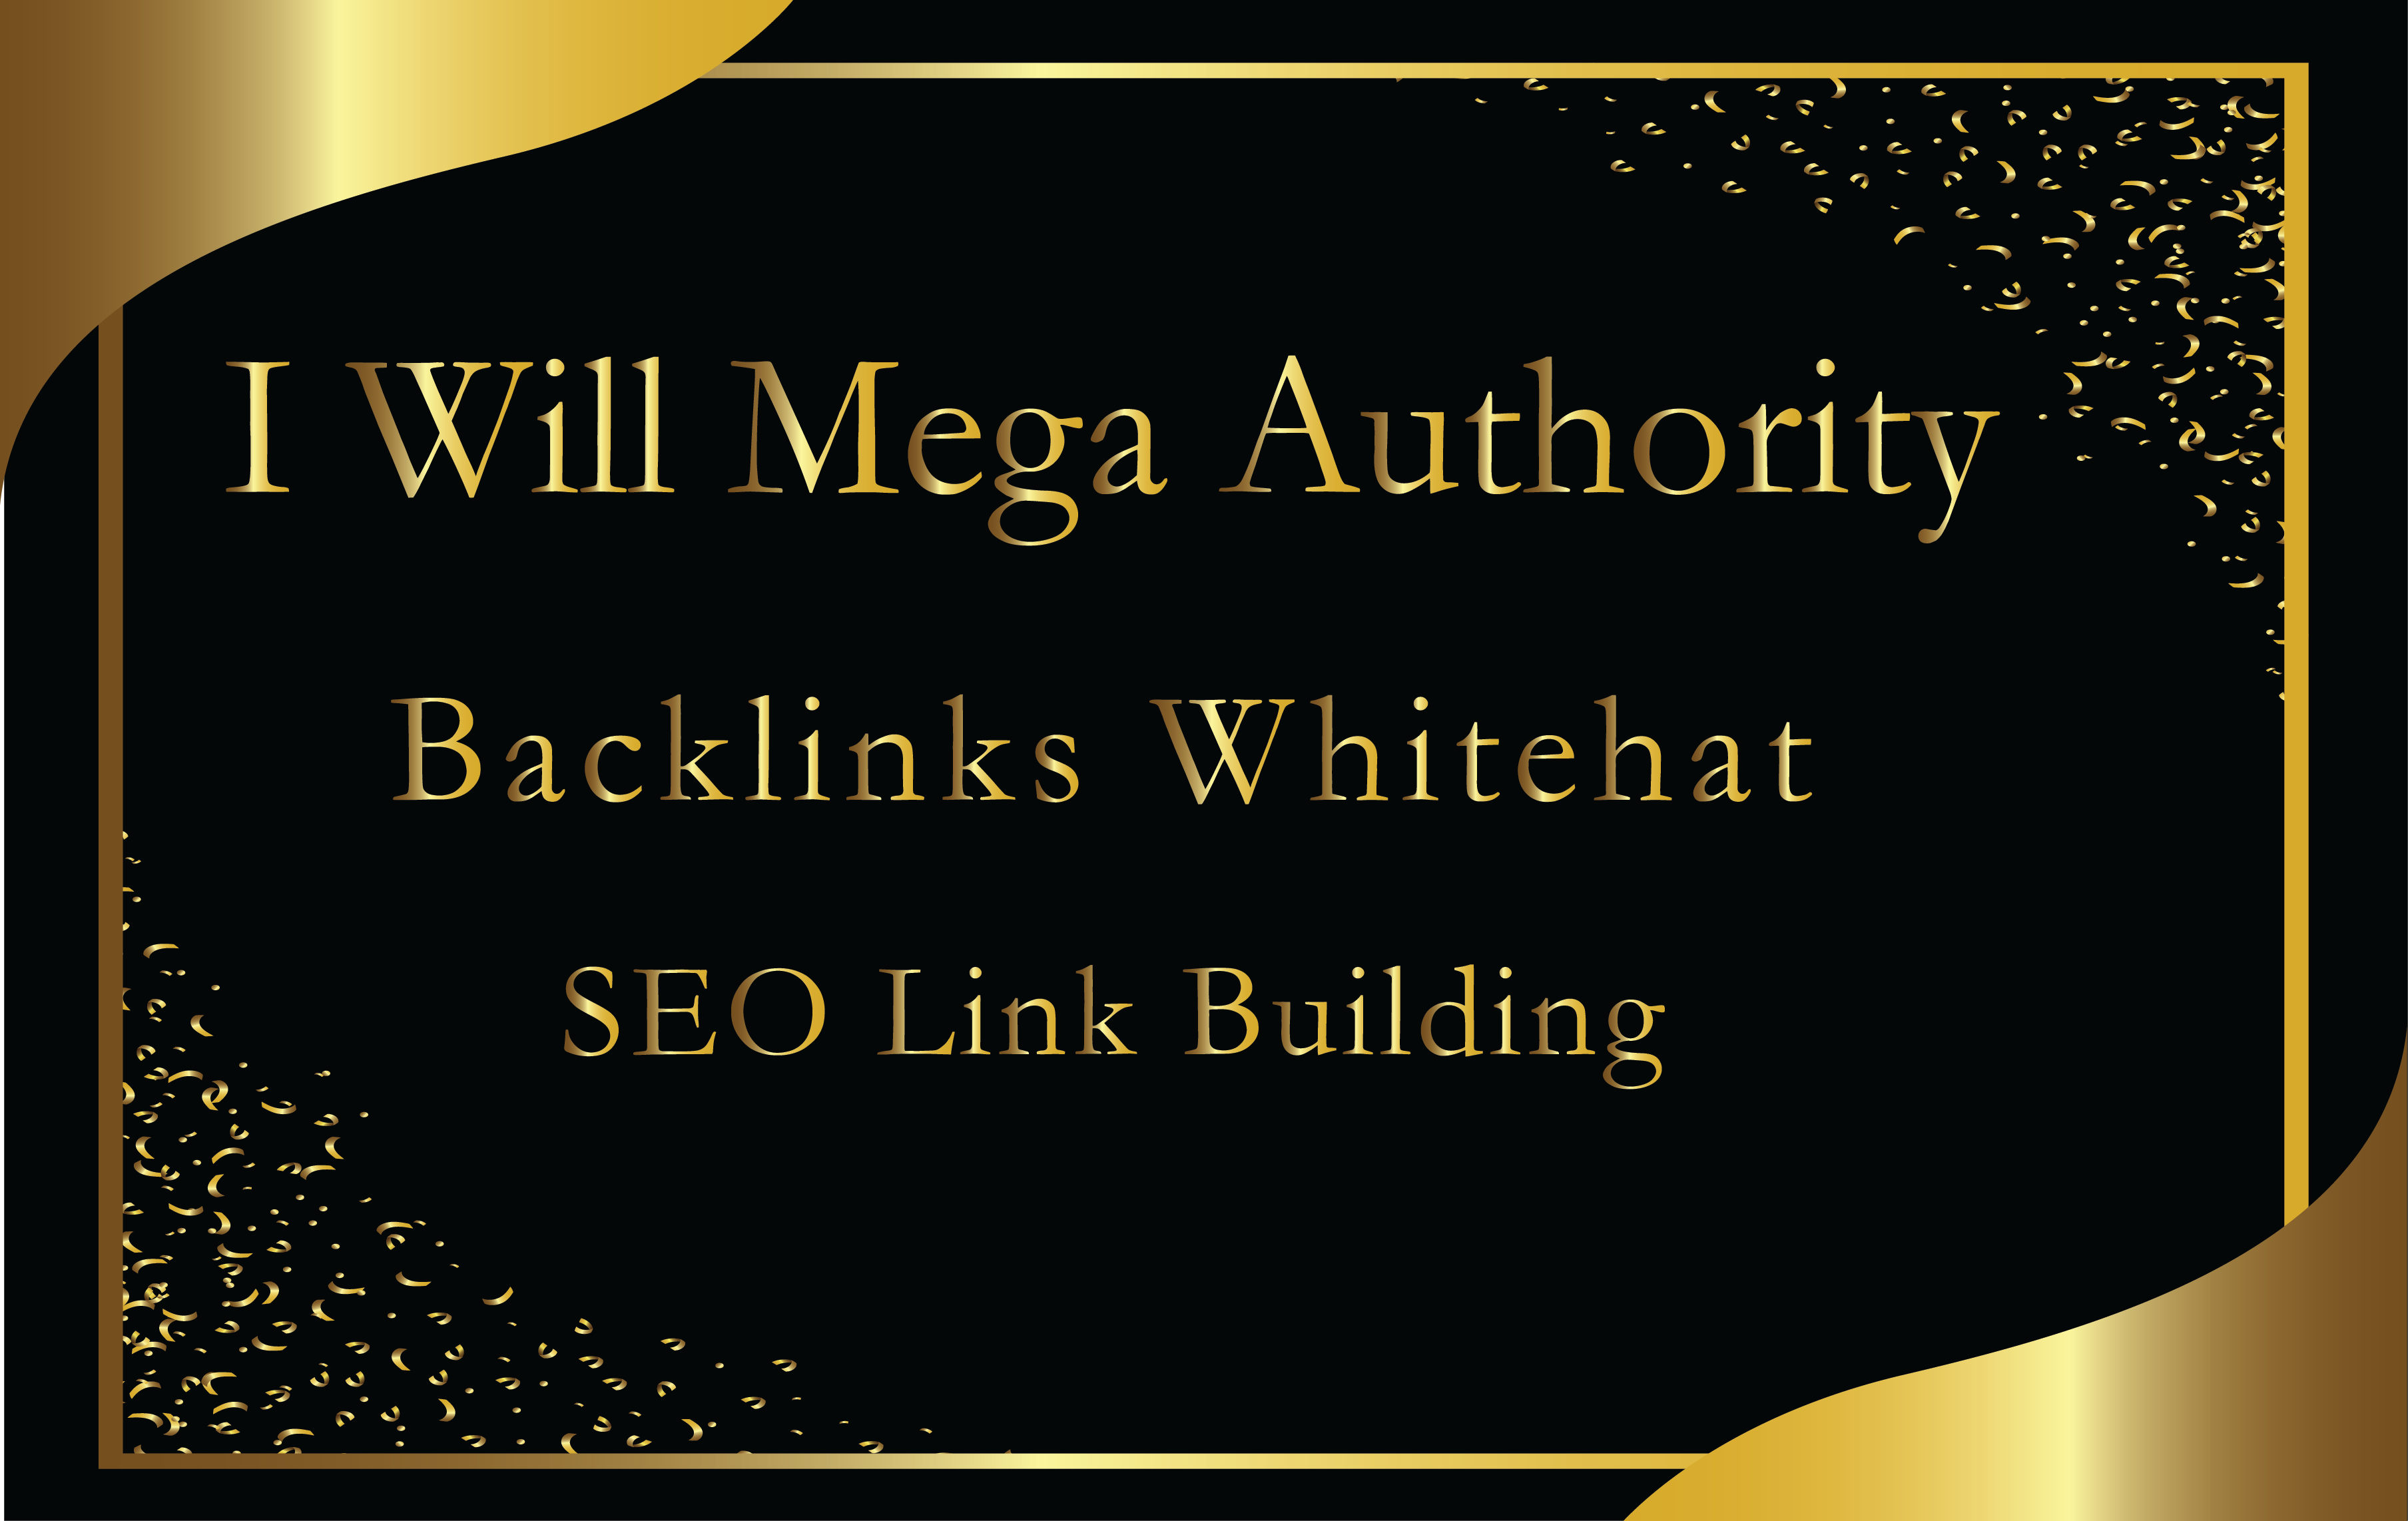 Do Mega Authority Backlinks Whitehat Seo Link Buildin...